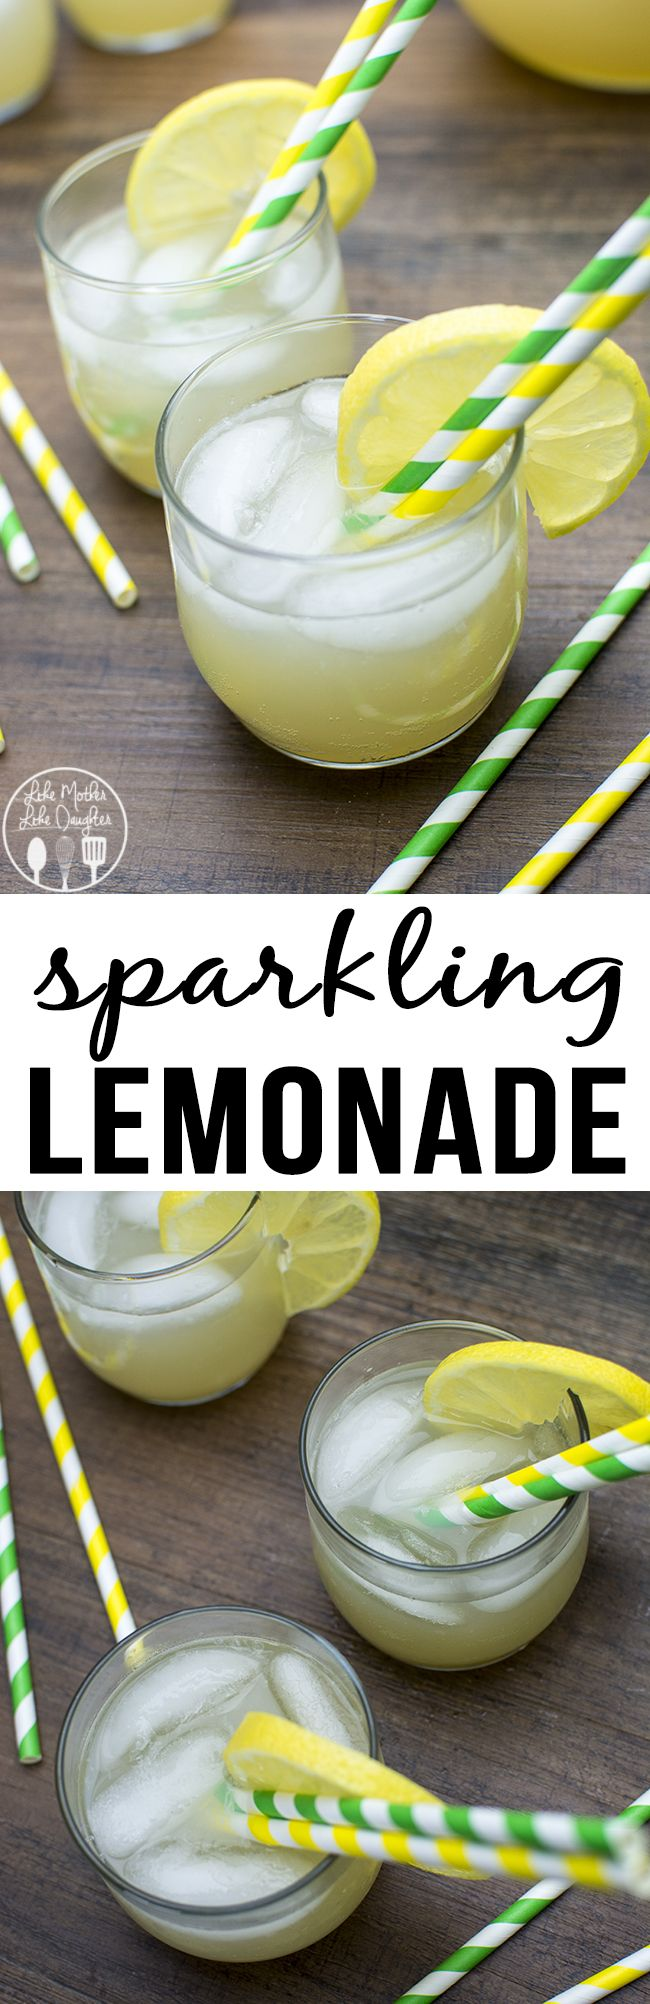 Sparkling Lemonade - This easy to make sparkling lemonade is only 2 ingredients and is the perfect refreshing bubbly drink for any occasion. #KeepSpringBubbly #ad